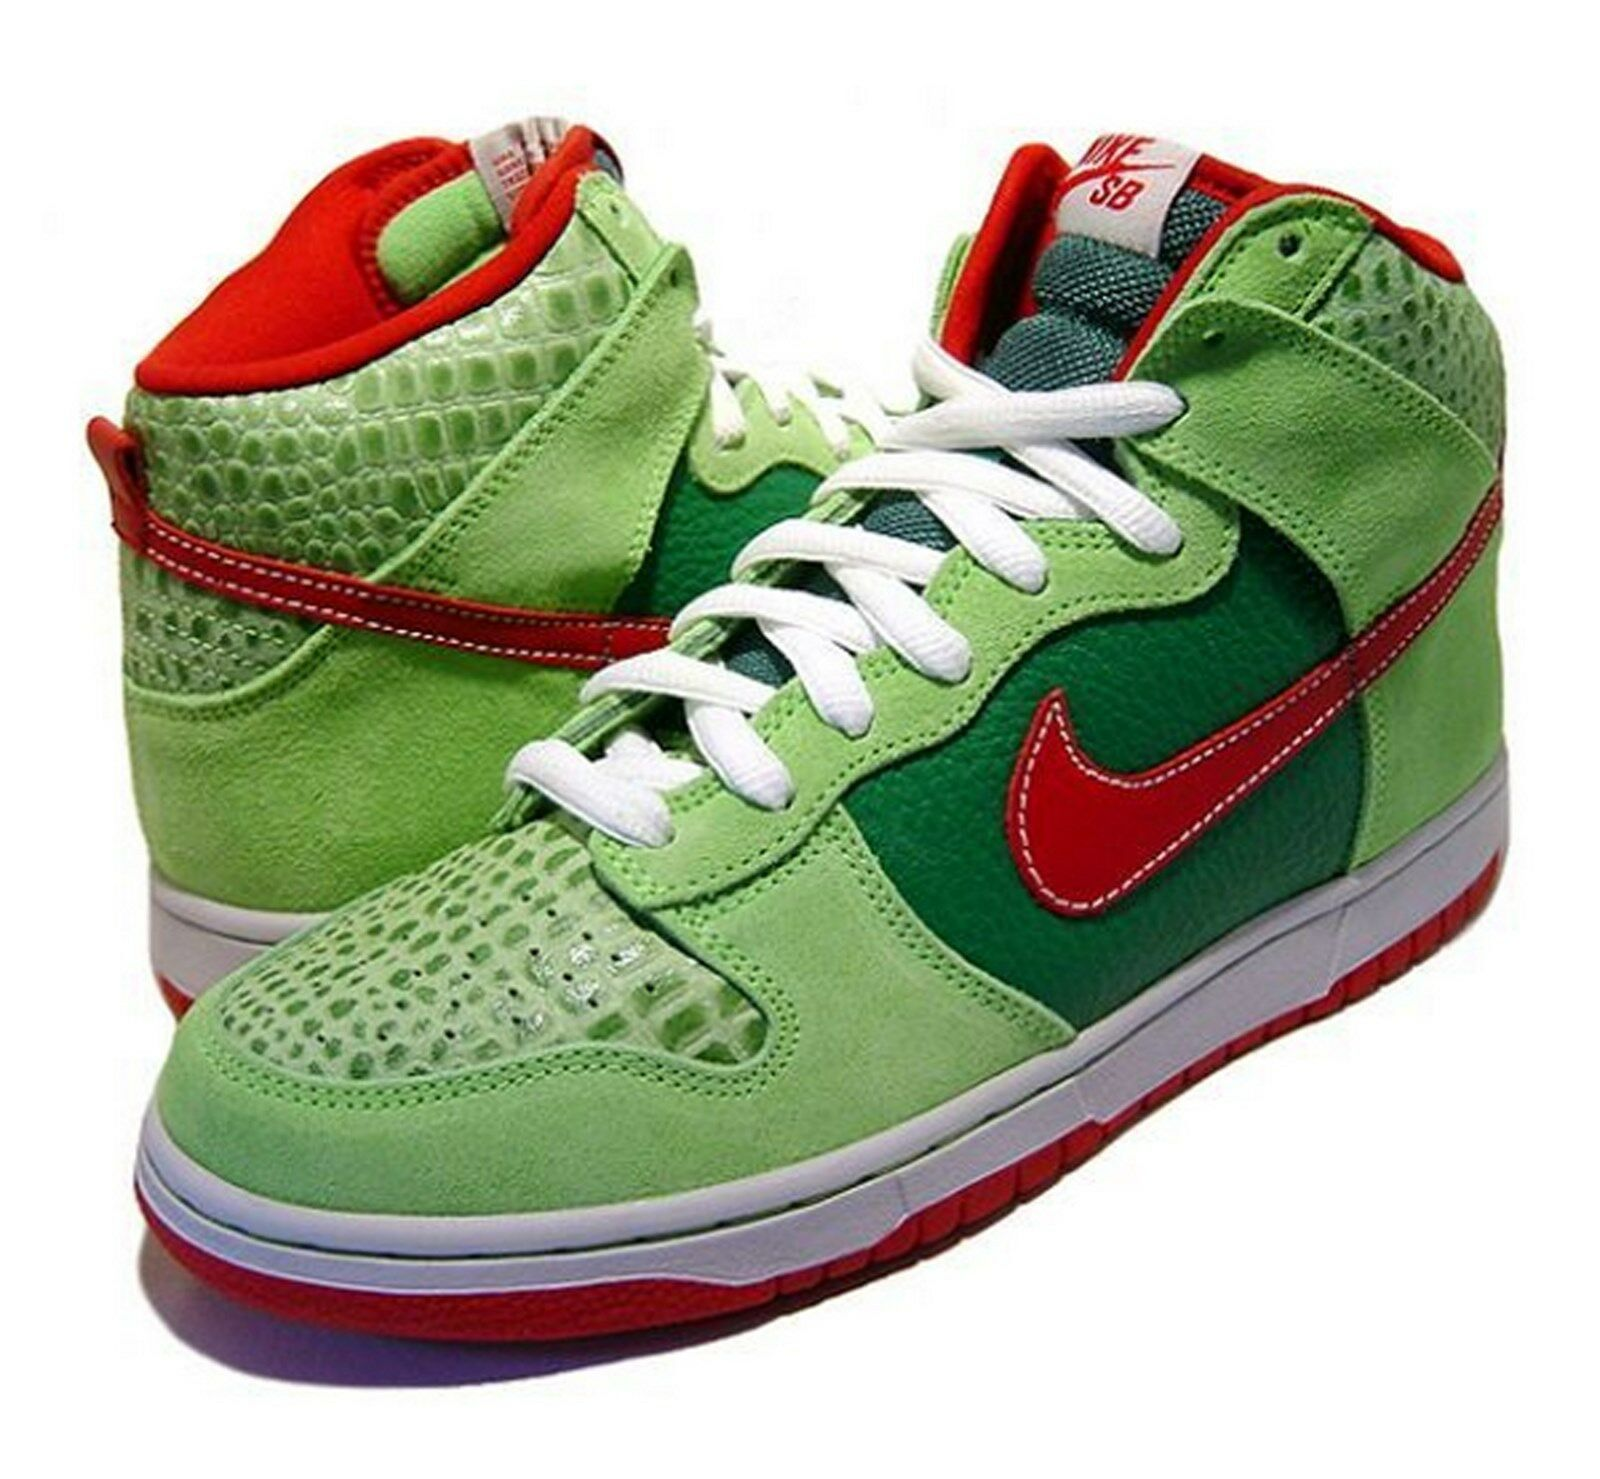 NEW NIKE DUNK HIGH PRO SB DR FEELGOOD SHOES SNEAKERS DEADSTOCK SIZE 8.5 US